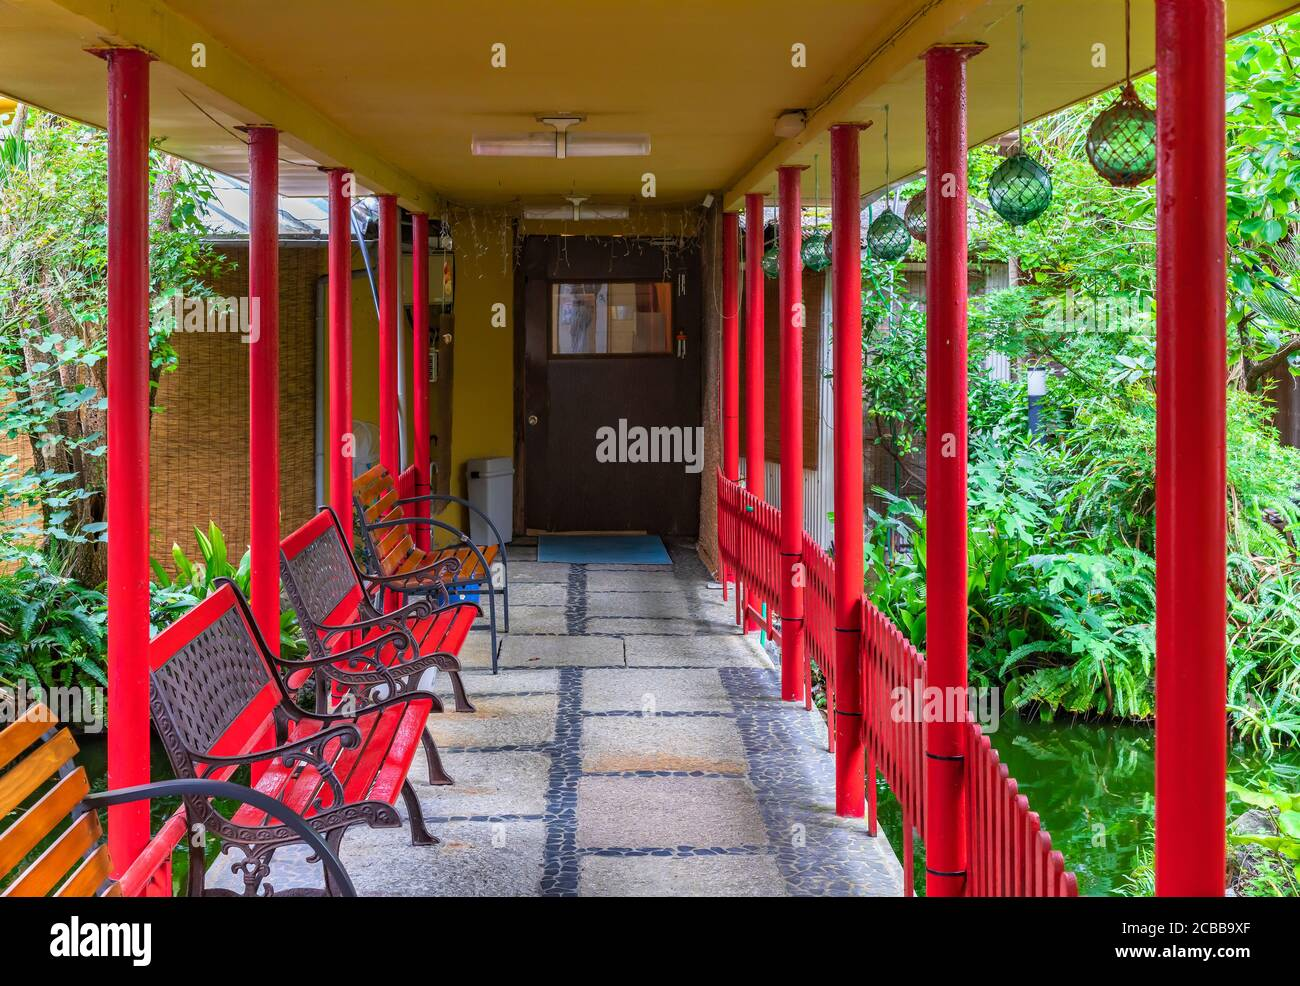 chiba, japan - july 18 2020: Hallway leading through the garden pond of a ryokan guesthouse to onsen hot spring surrounded by benches, pillars and jap Stock Photo